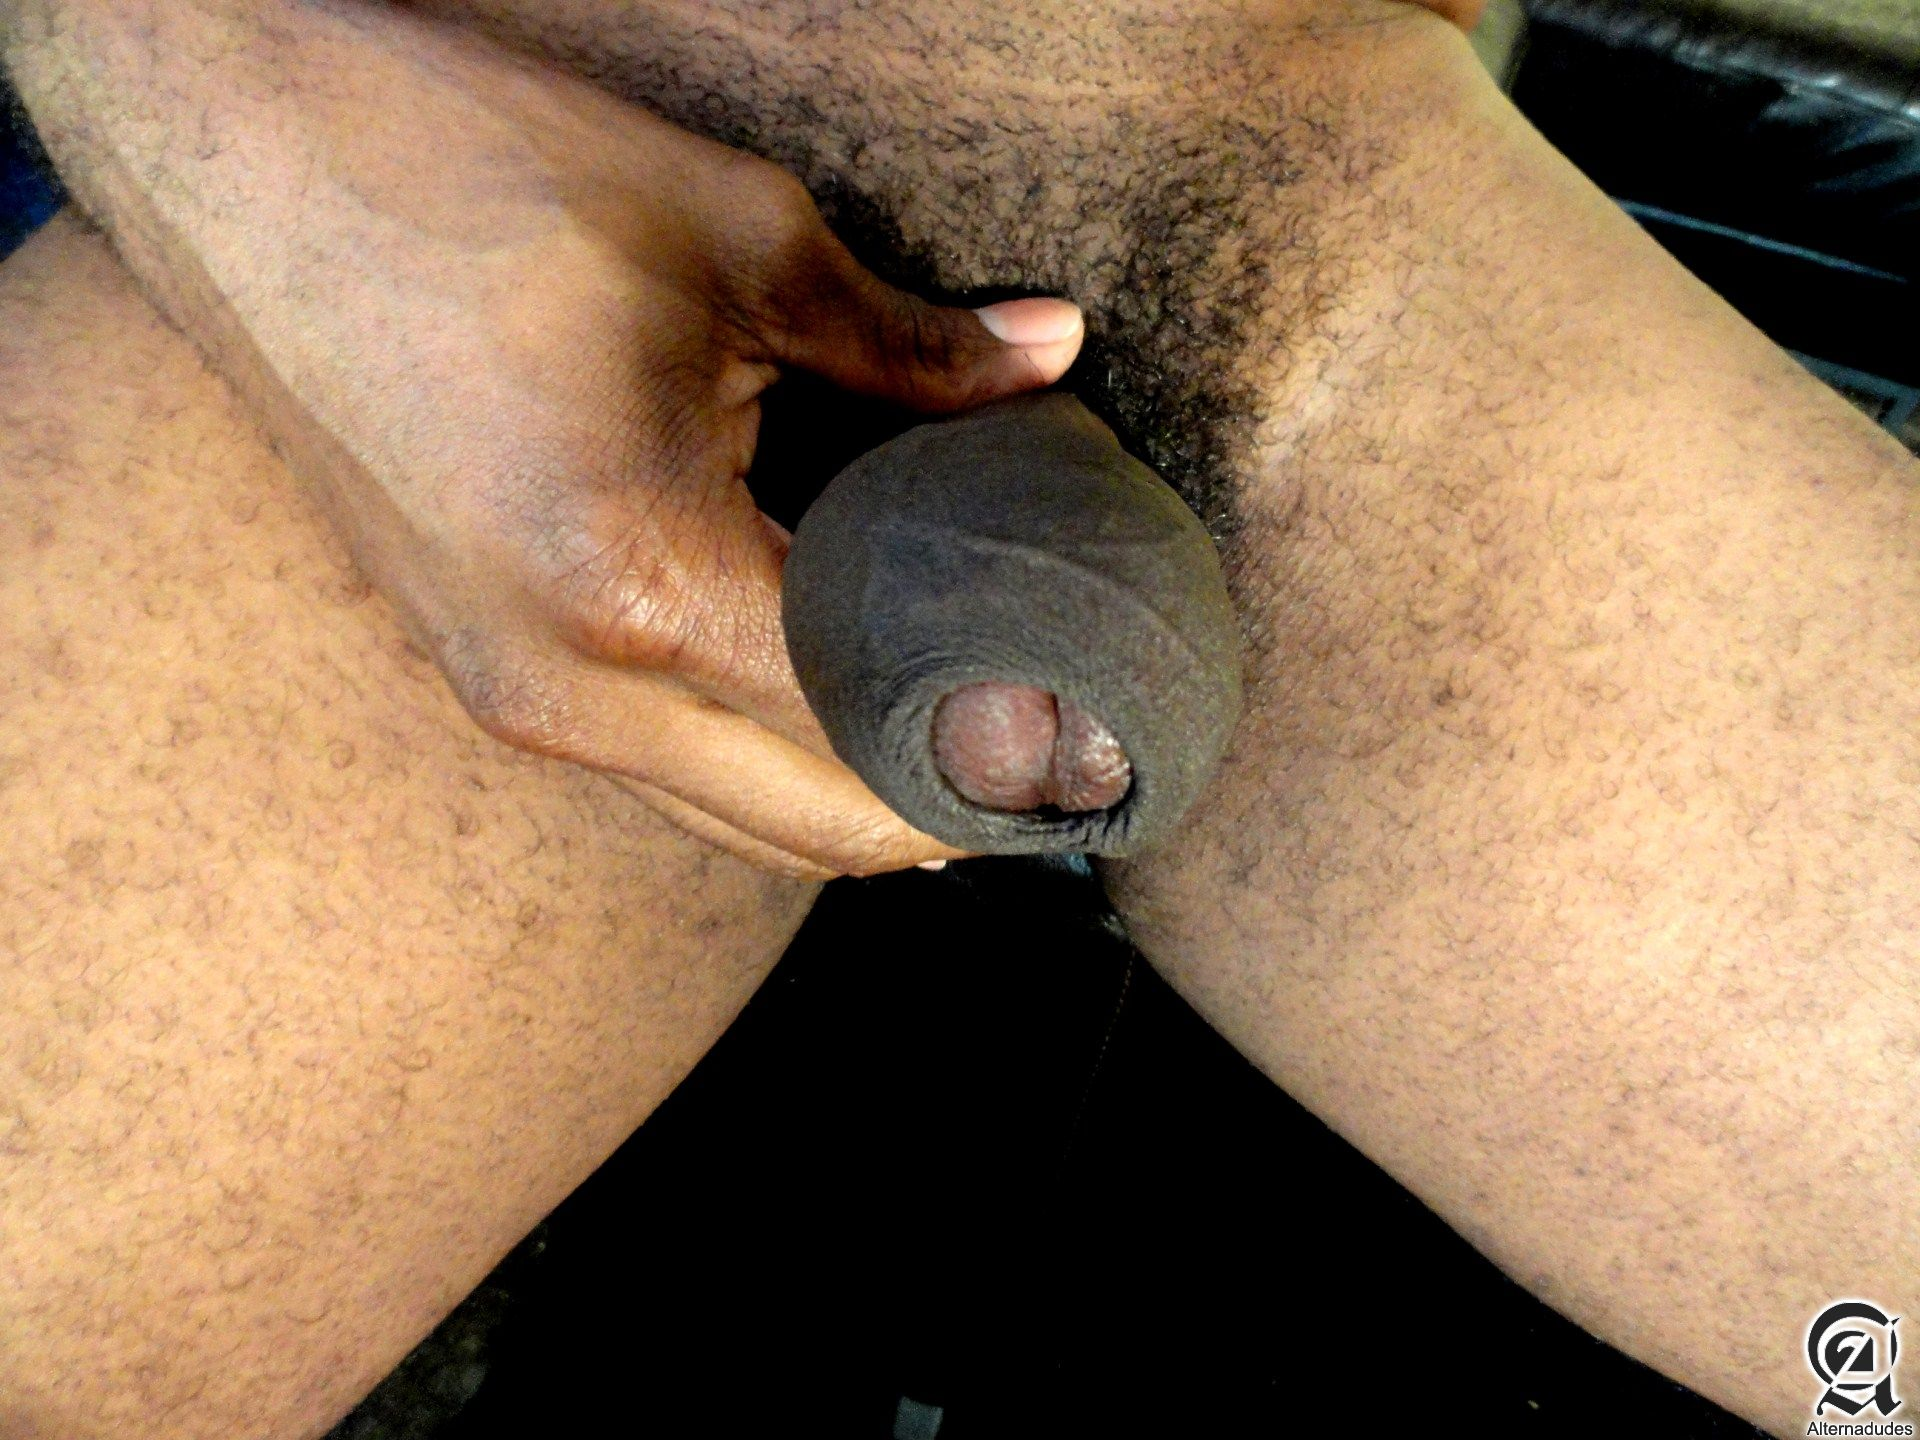 cock uncut Big black